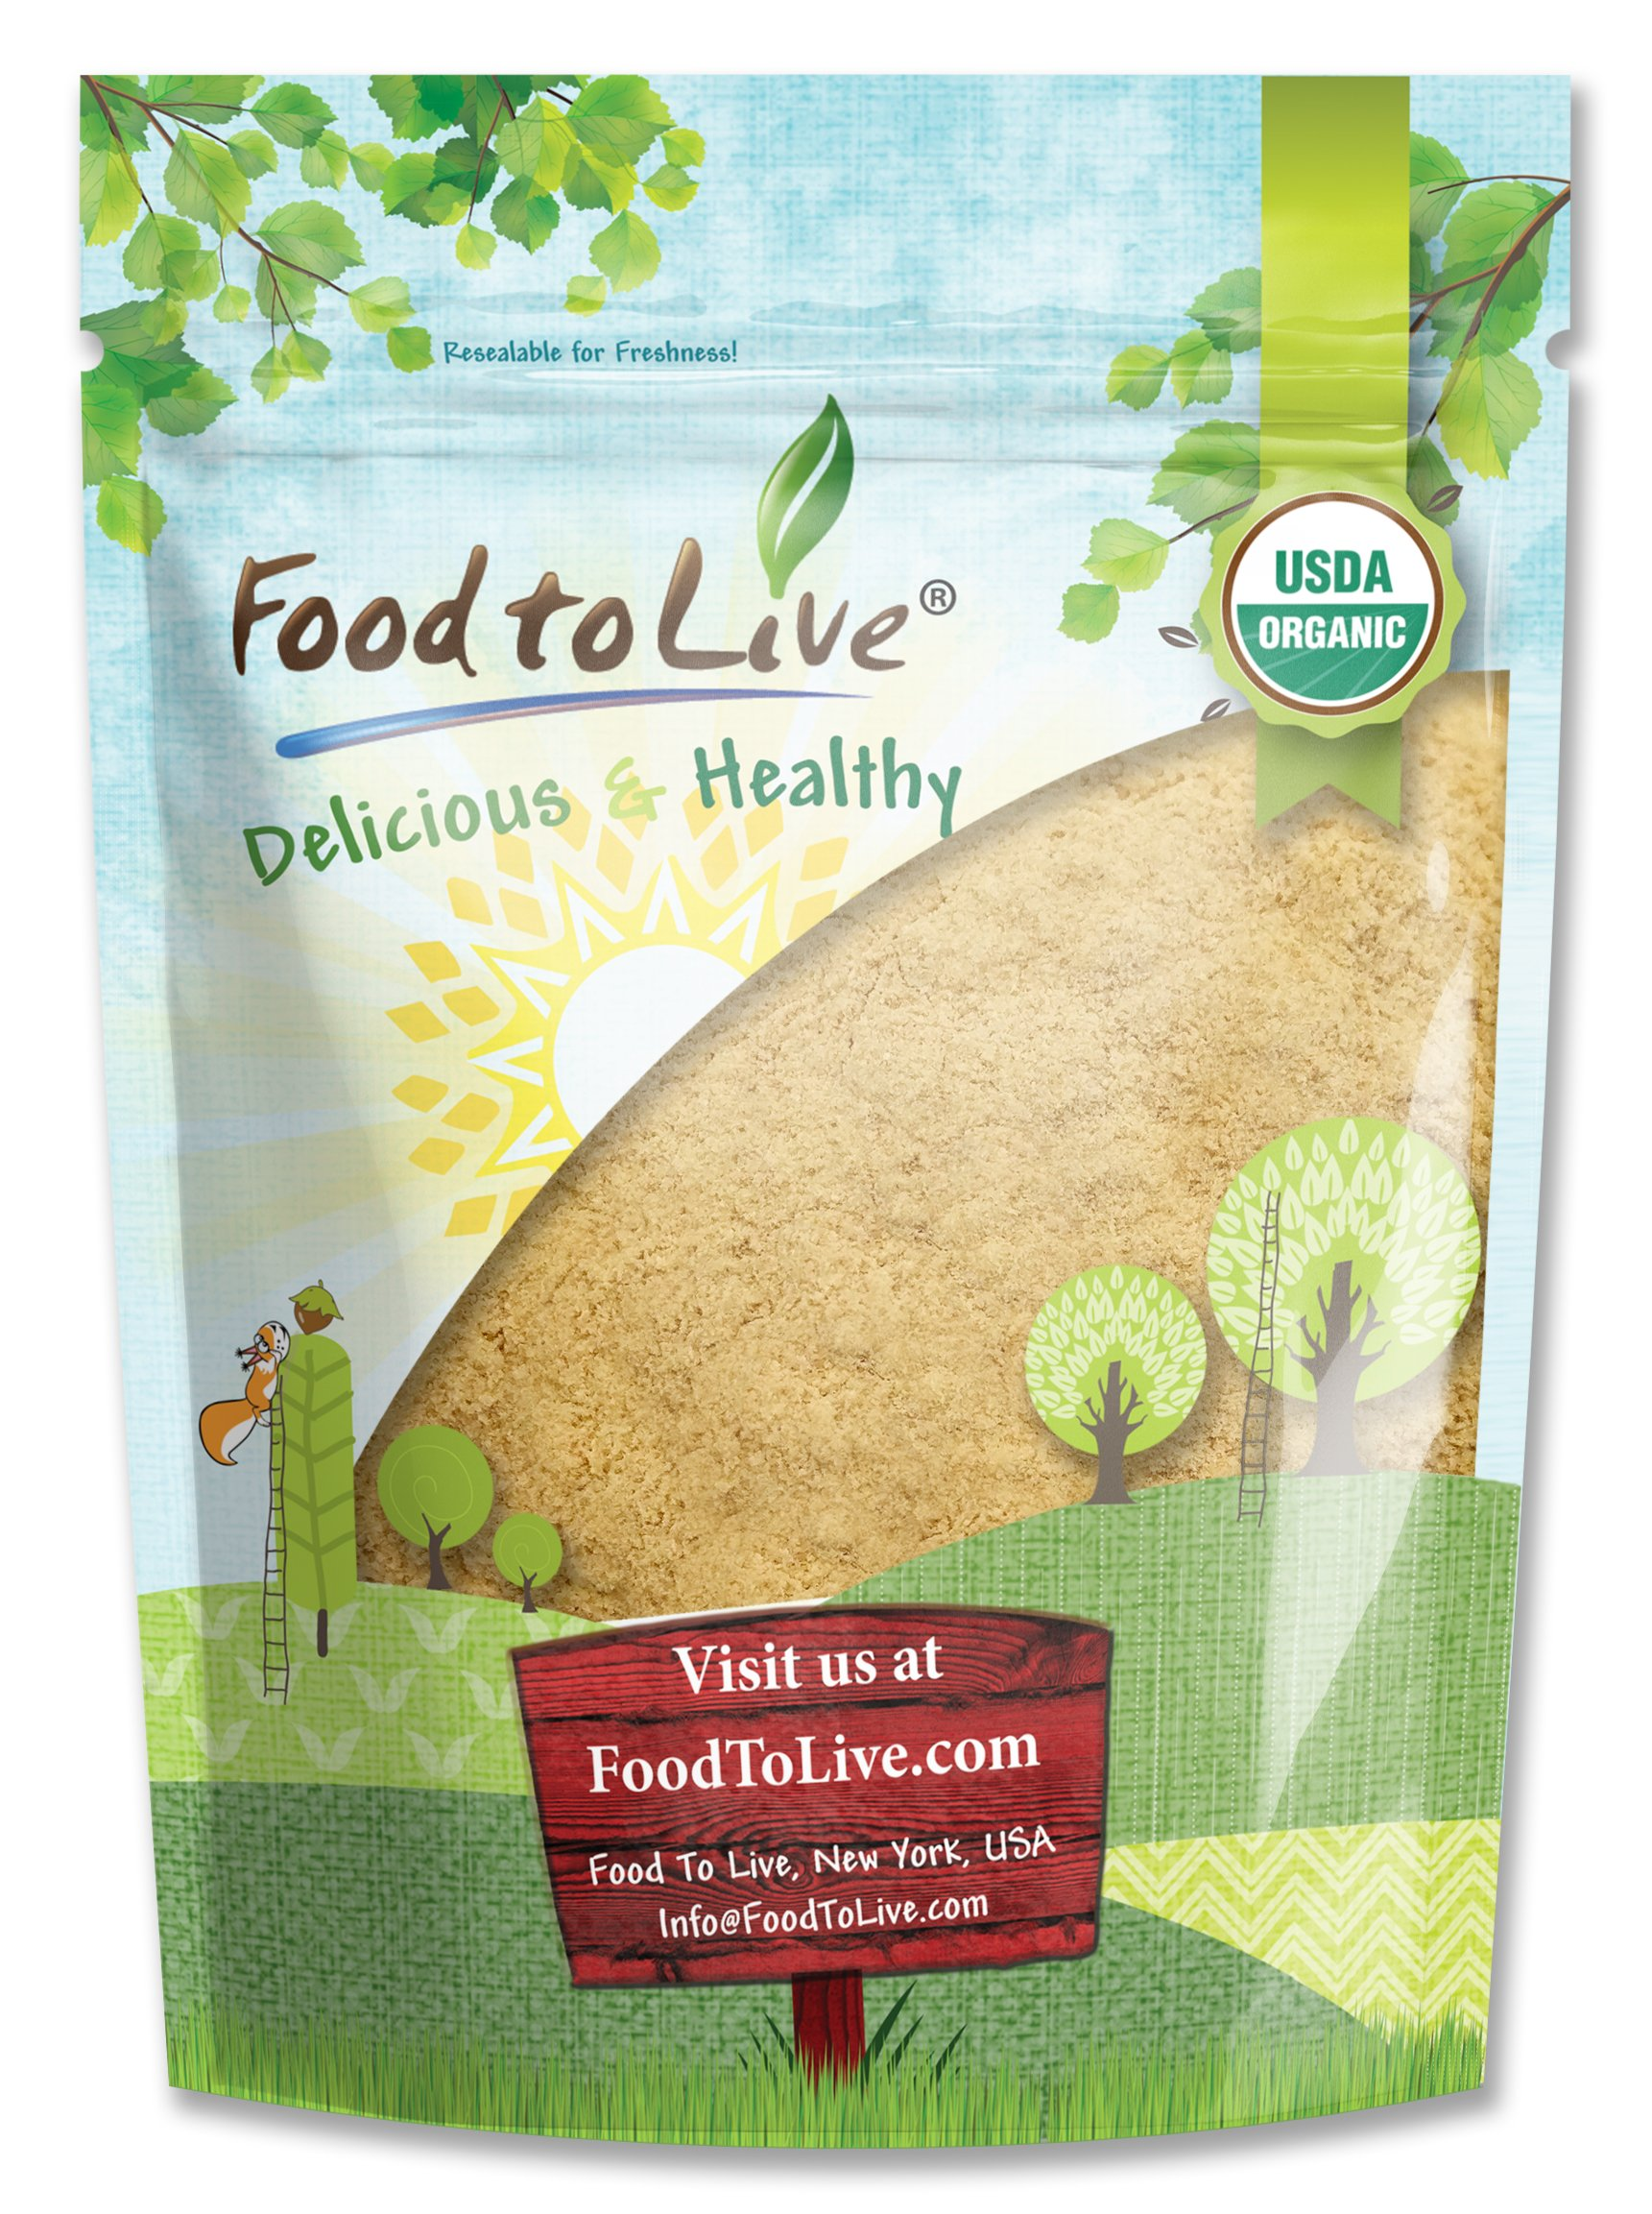 Food to Live Certified Organic Maca Root Powder (Non-GMO, Kosher, Raw Ground Maca Root, Flour, Bulk) (2 Pounds)